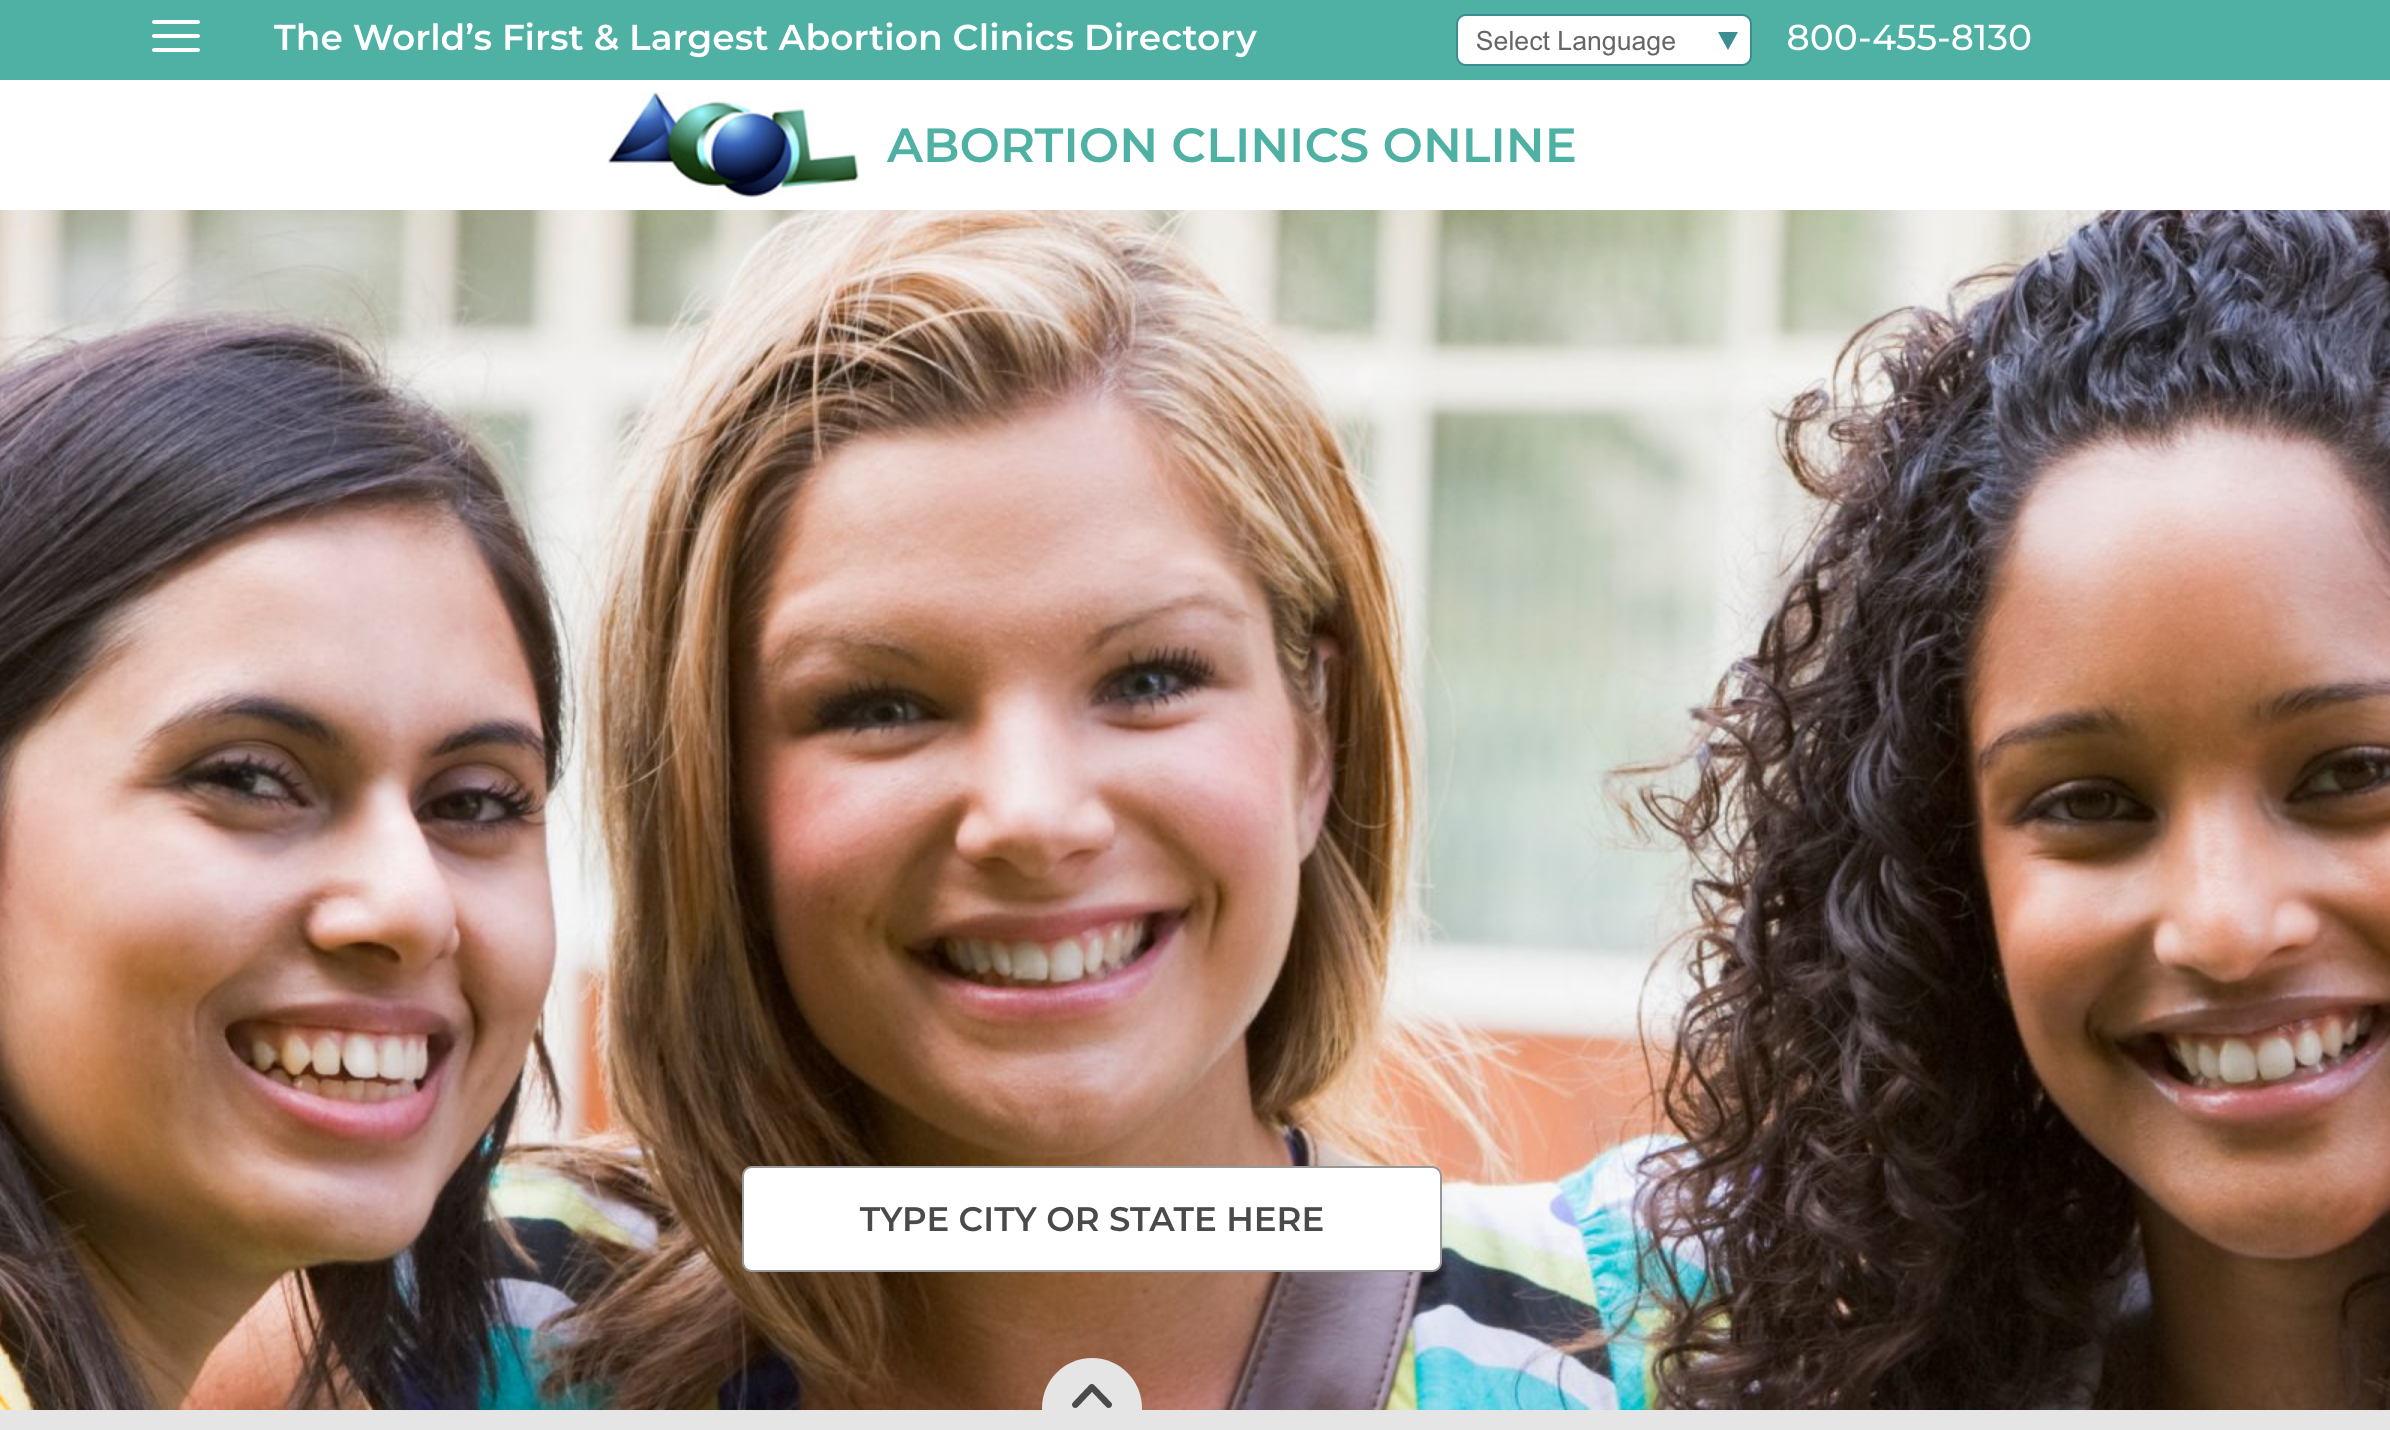 What people say about ACOL - Abortion Clinics Online directory of abortion clinics